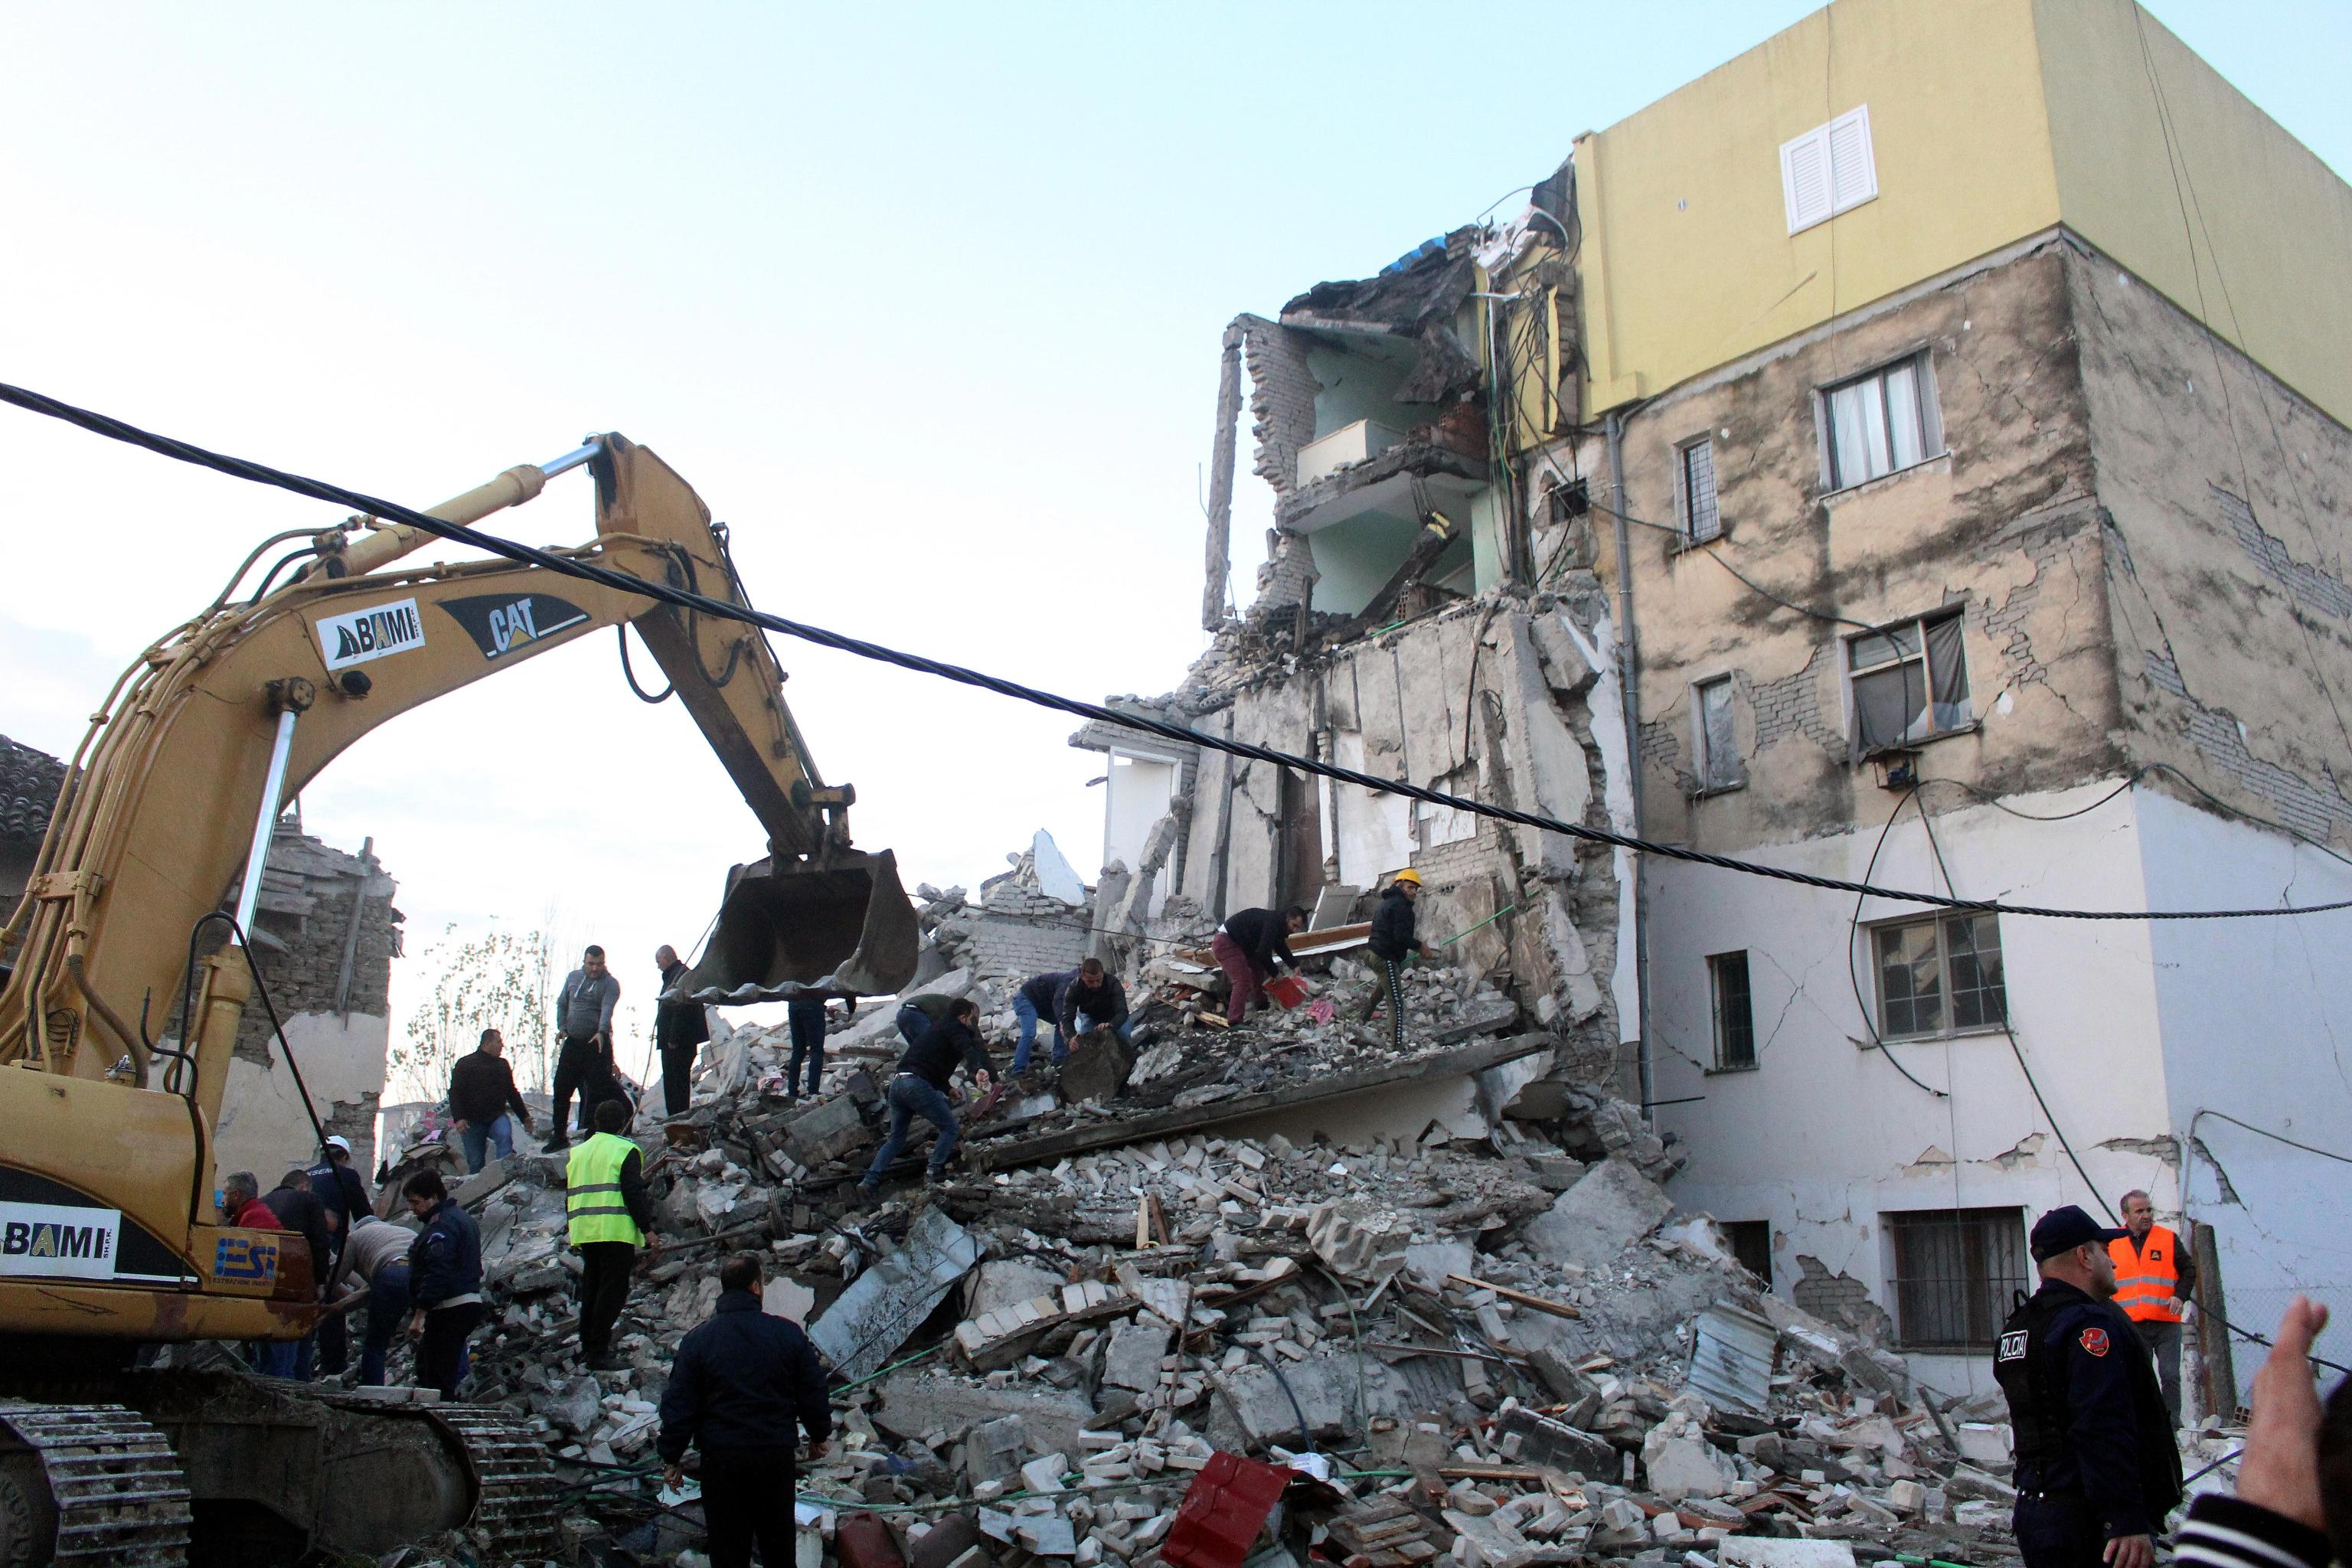 epa08025883 People search for survivors in the rubble of a building after an earthquake hit Thumane, Albania, 25 November 2019. Albania was hit by a 6.4 magnitude earthquake on 26 November 2019, leaving three people dead and dozens injured.  EPA/MALTON DIBRA